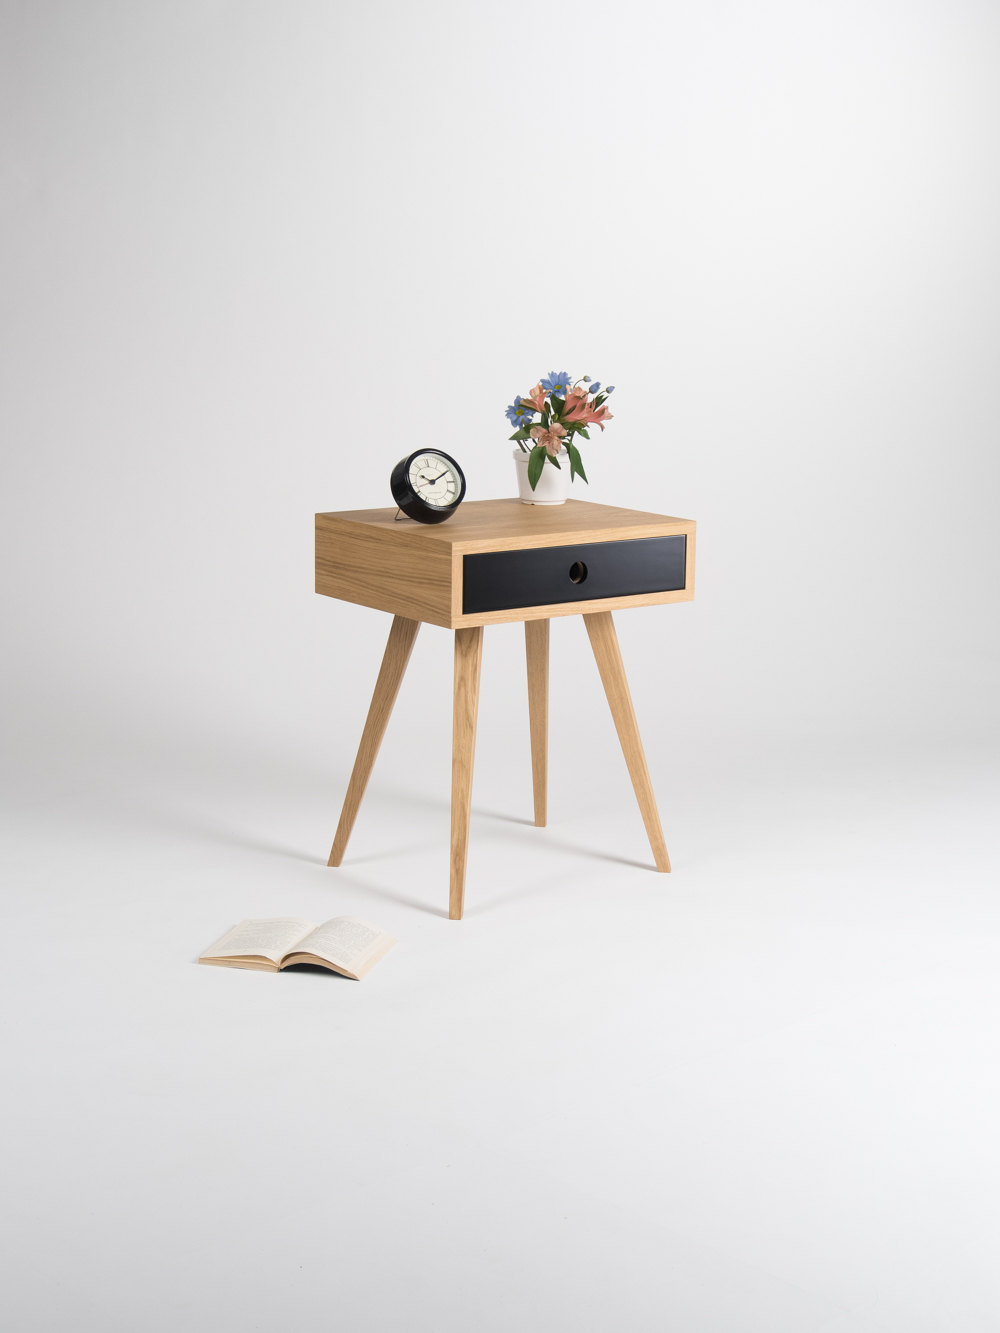 Image of: Mid Century Modern Nightstand Bedside Table End Table With Black Drawer Made Of Oak Wood Sold By Mo Woodwork On Storenvy